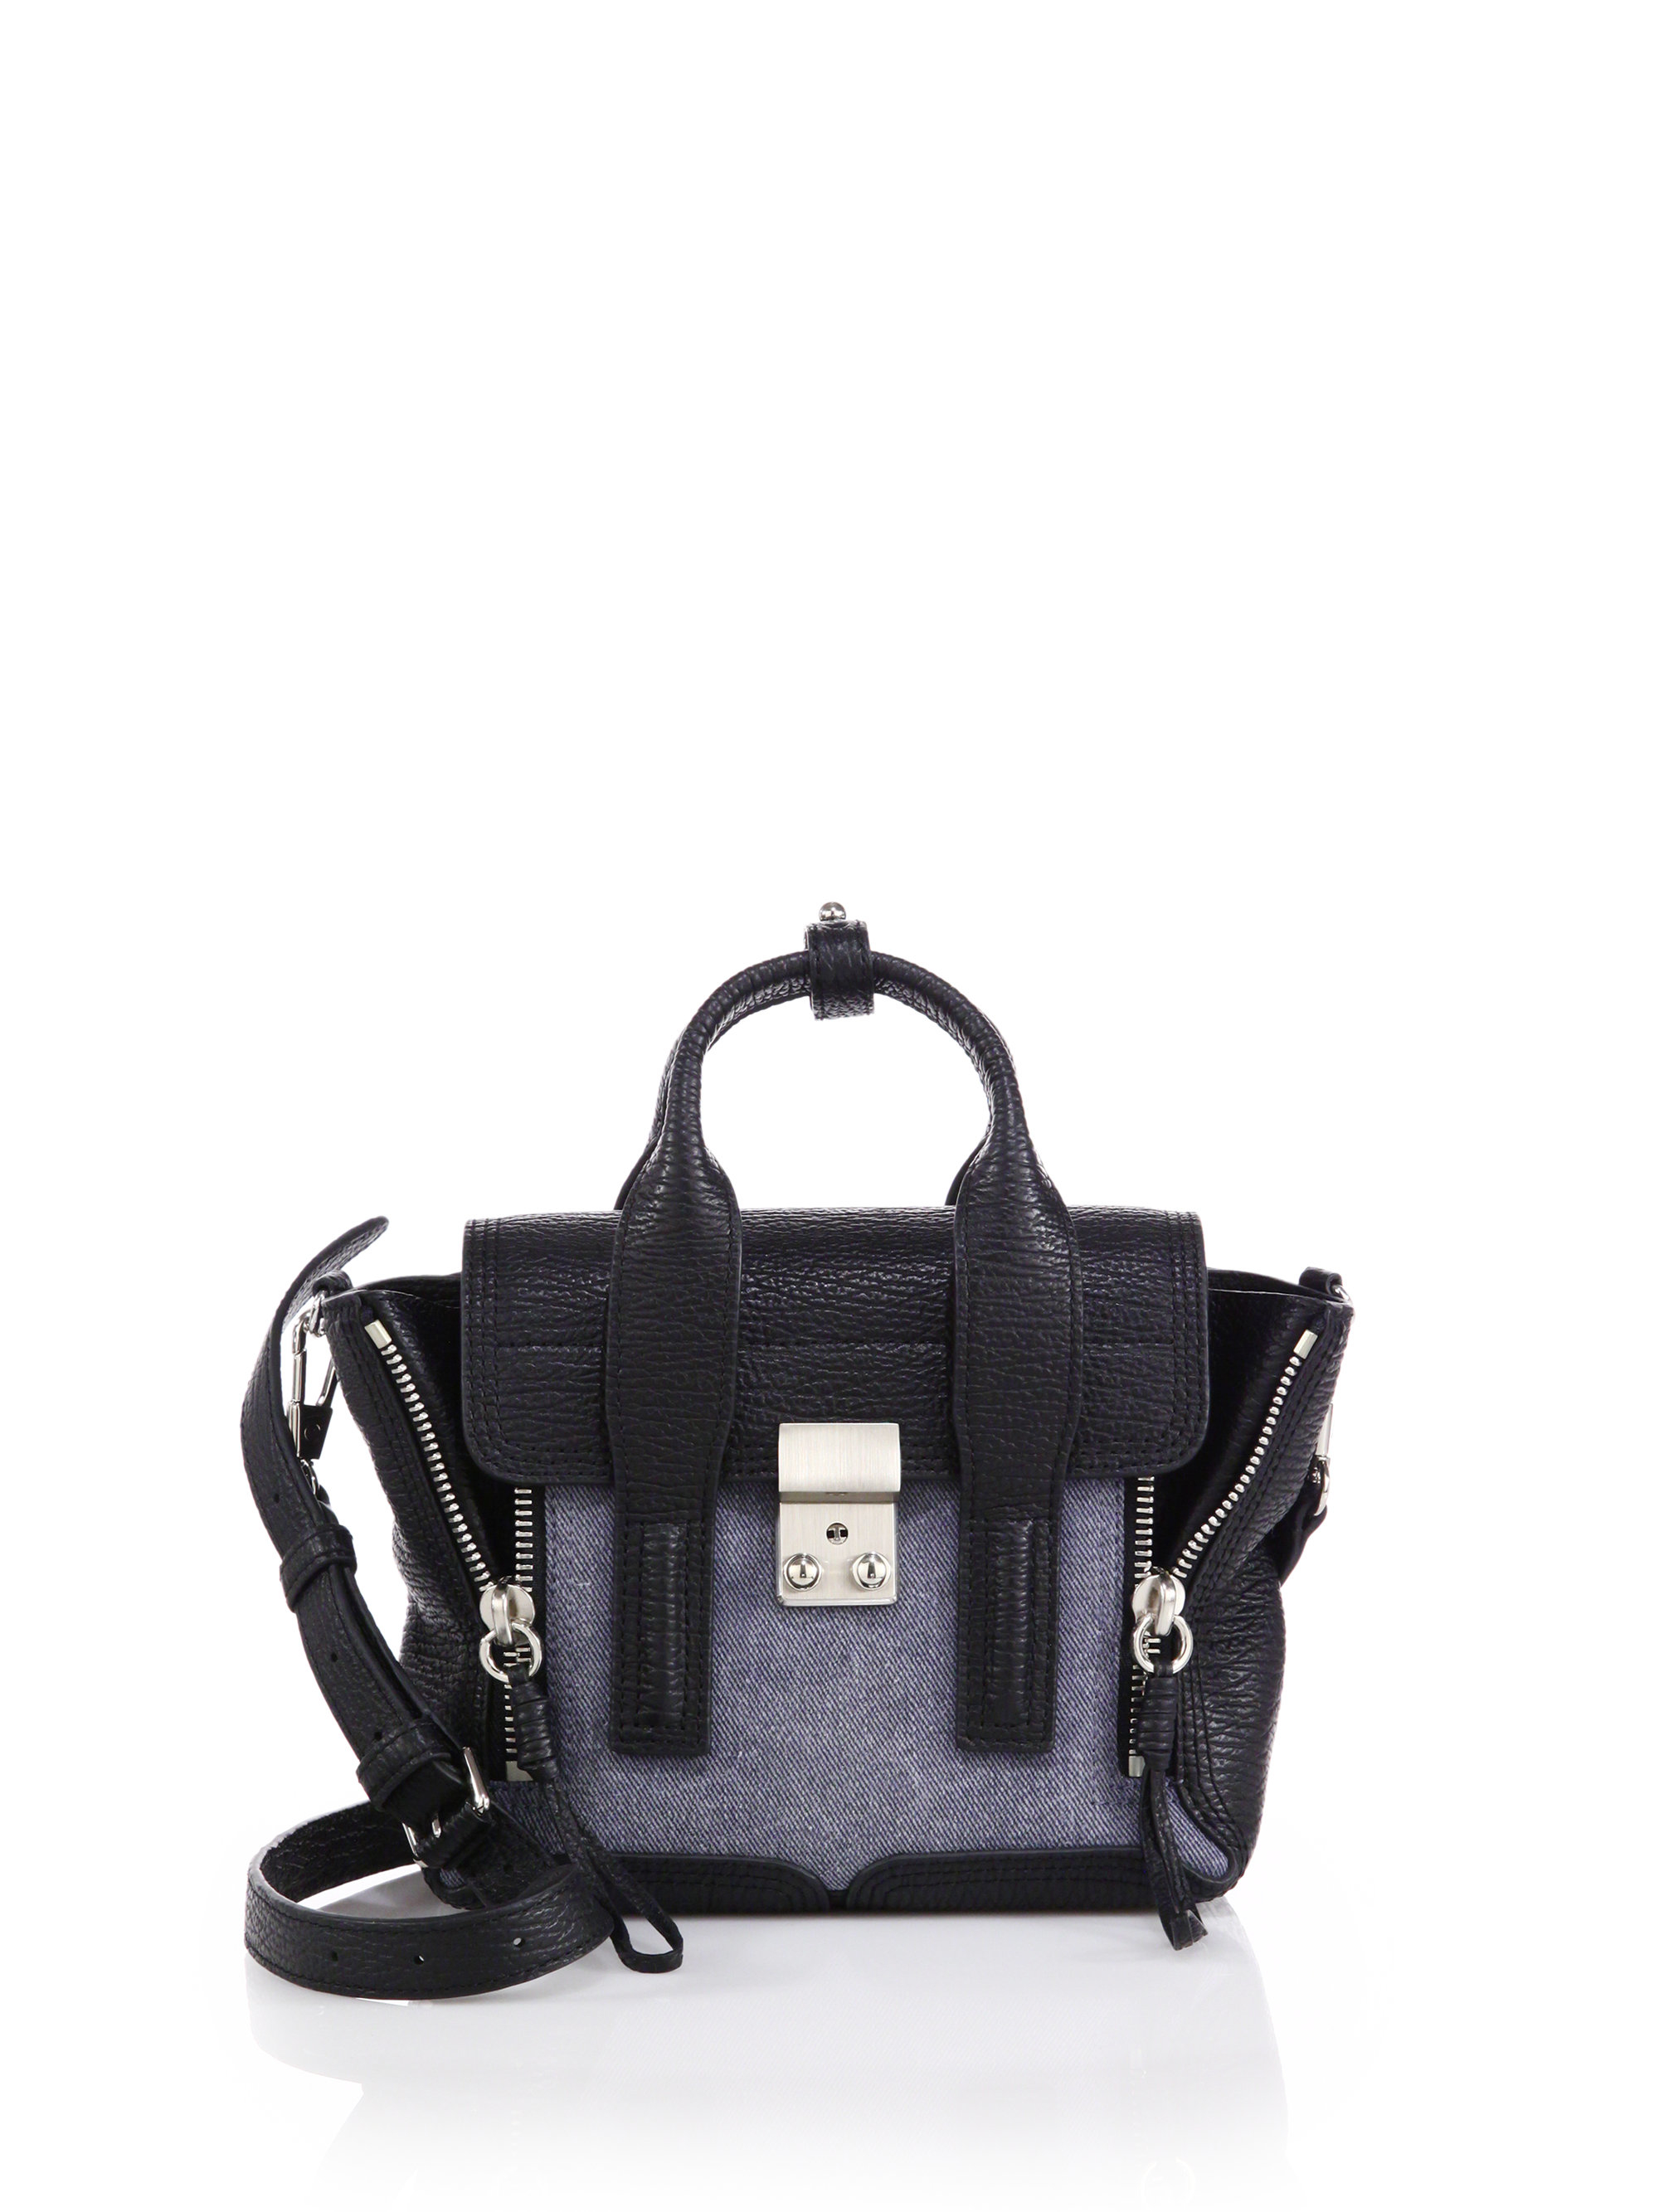 Black Nano Shark Pashli Satchel 3.1 Phillip Lim